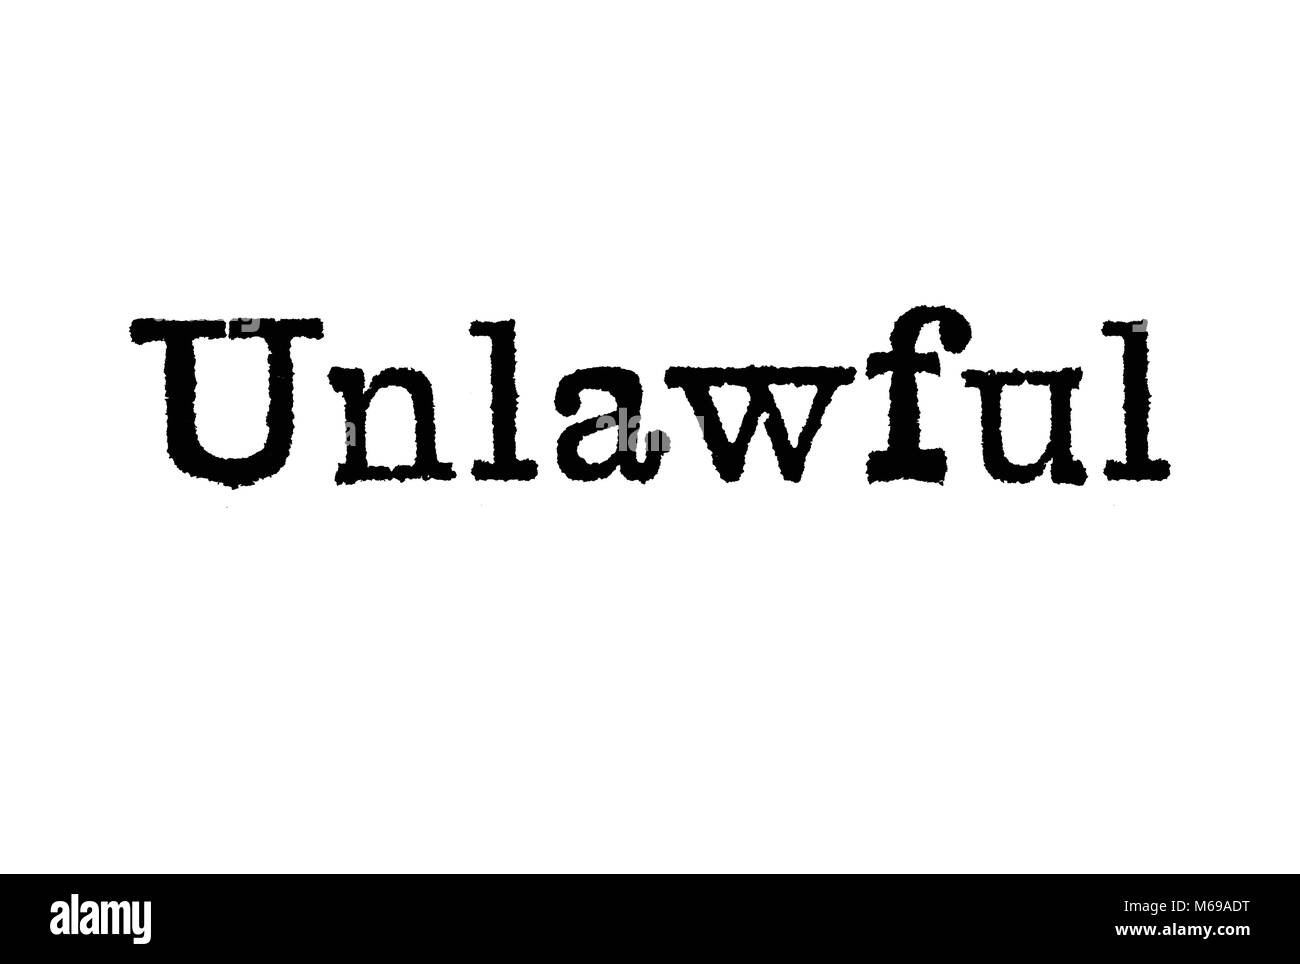 The word Unlawful from a typewriter on a white background - Stock Image